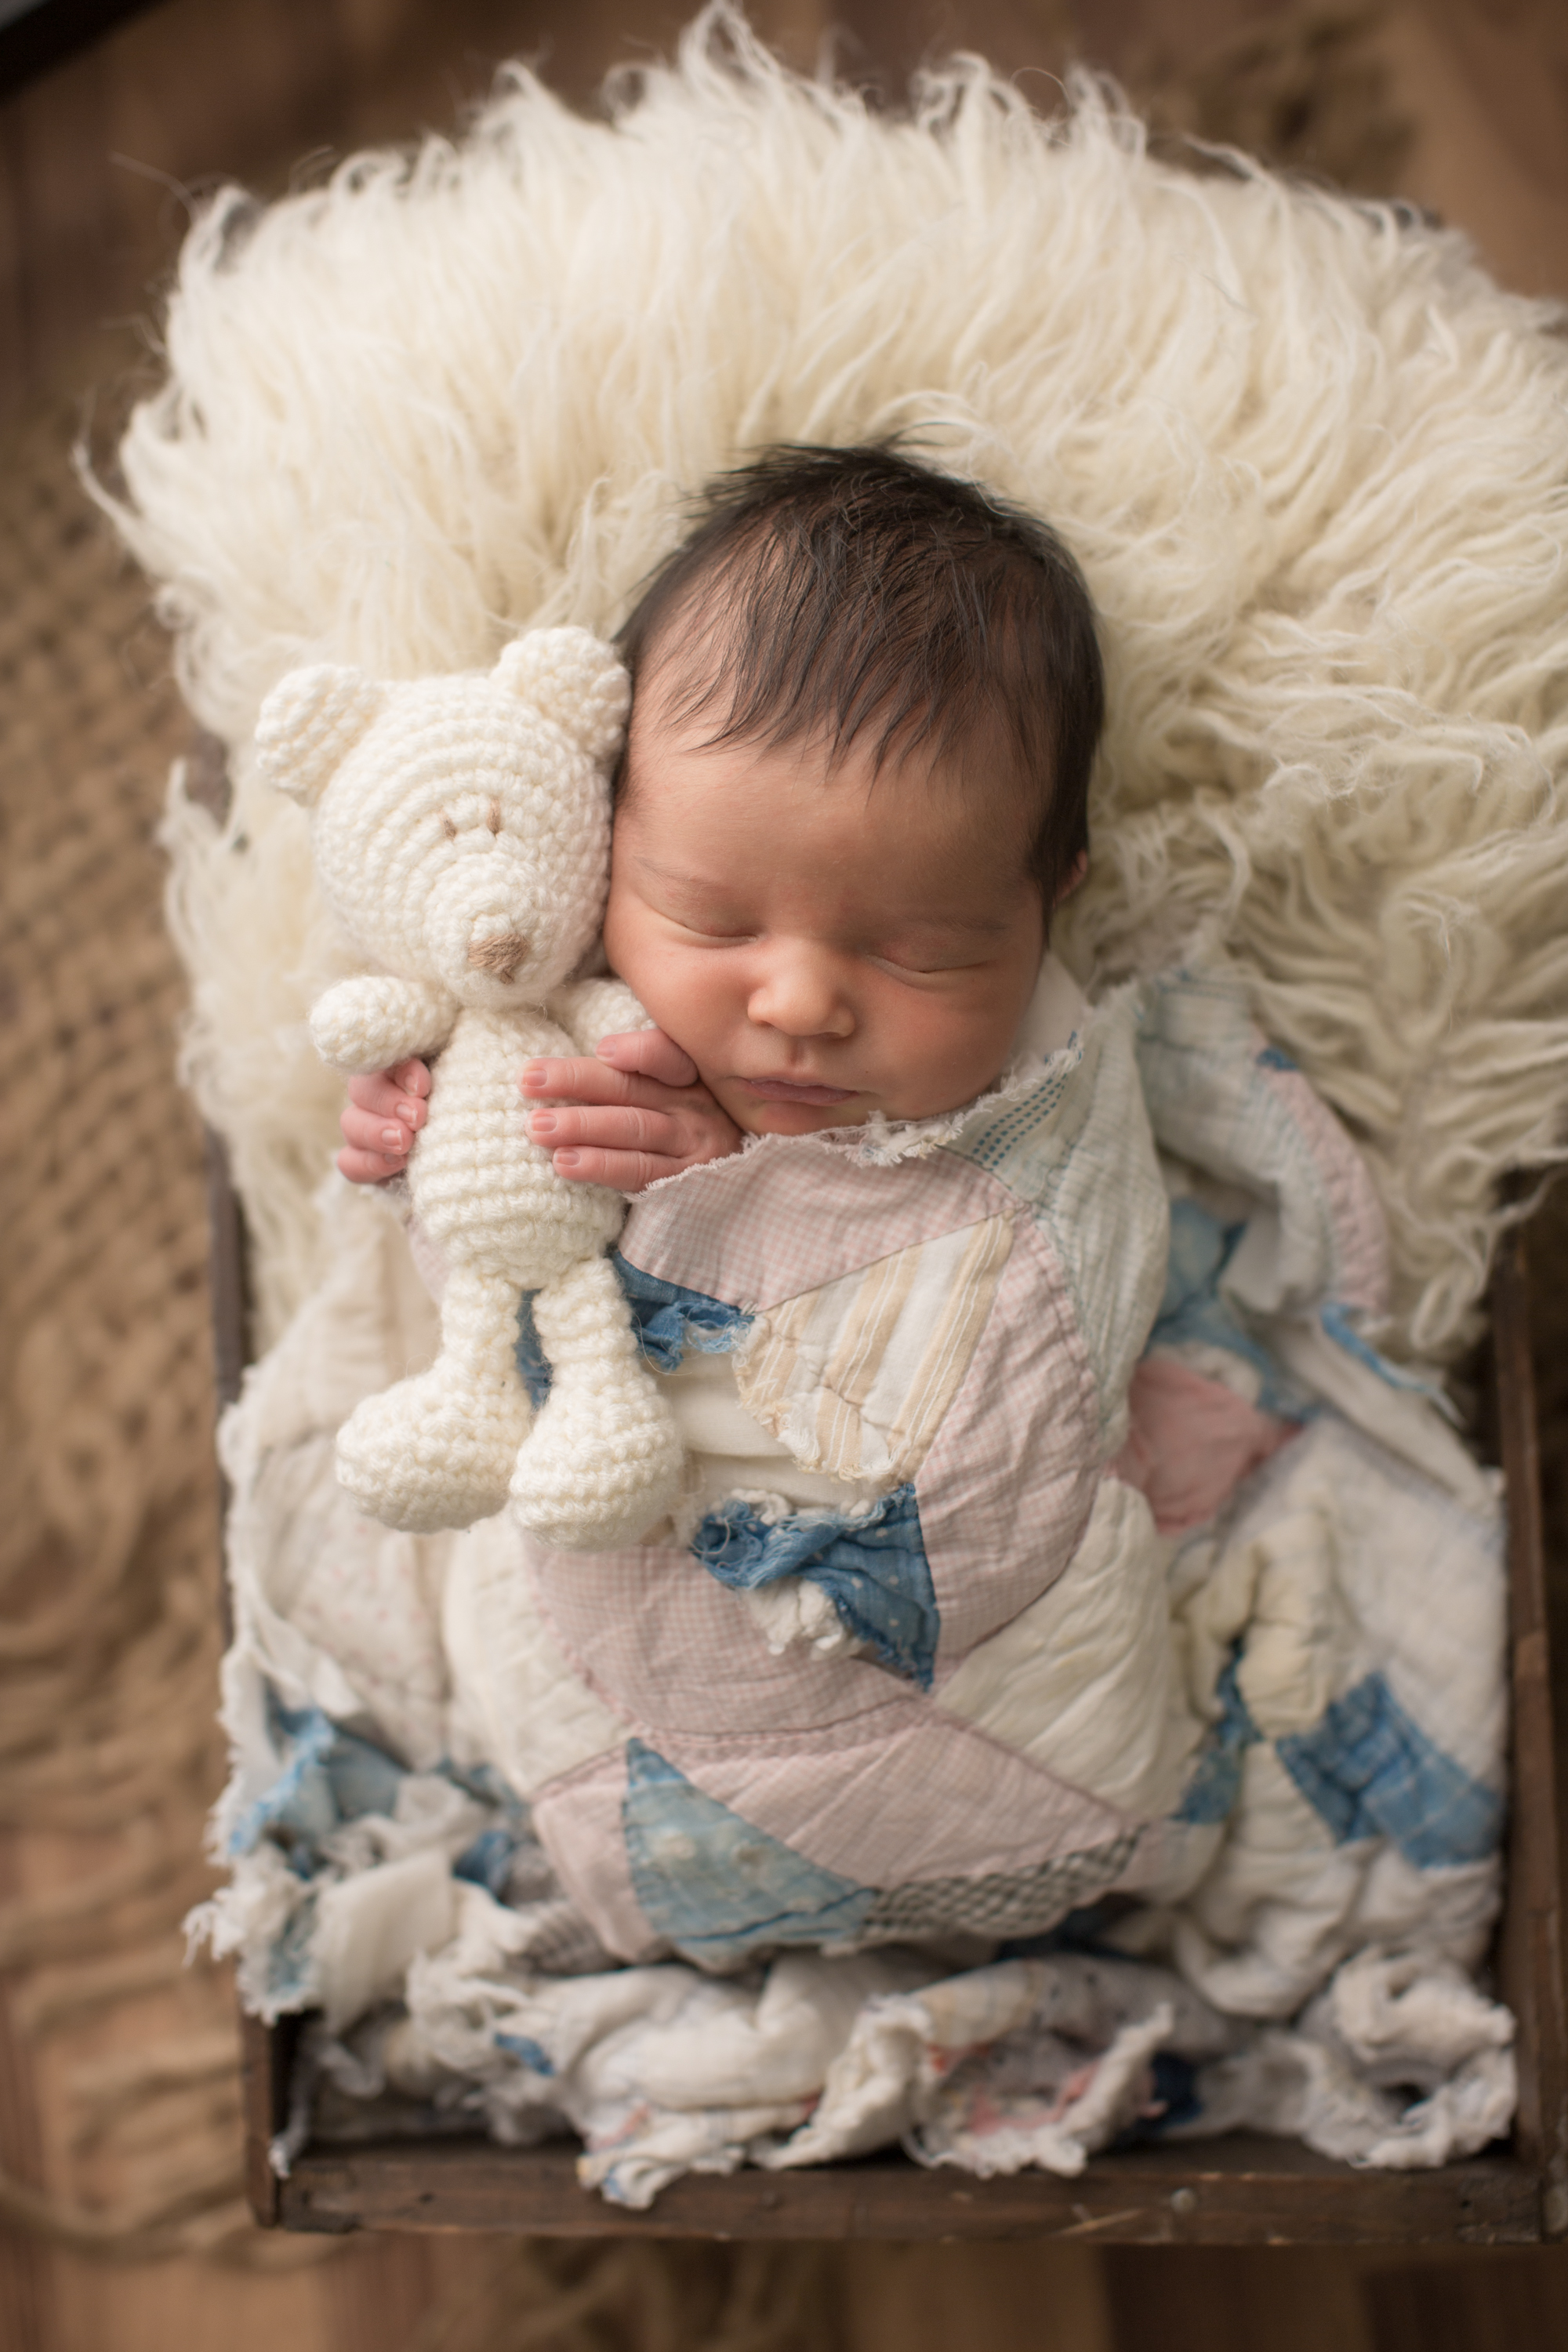 Baby girl in crate, baby girl in quilt, baby girl holding bear, grand blanc baby photos, grand blanc professional photographer